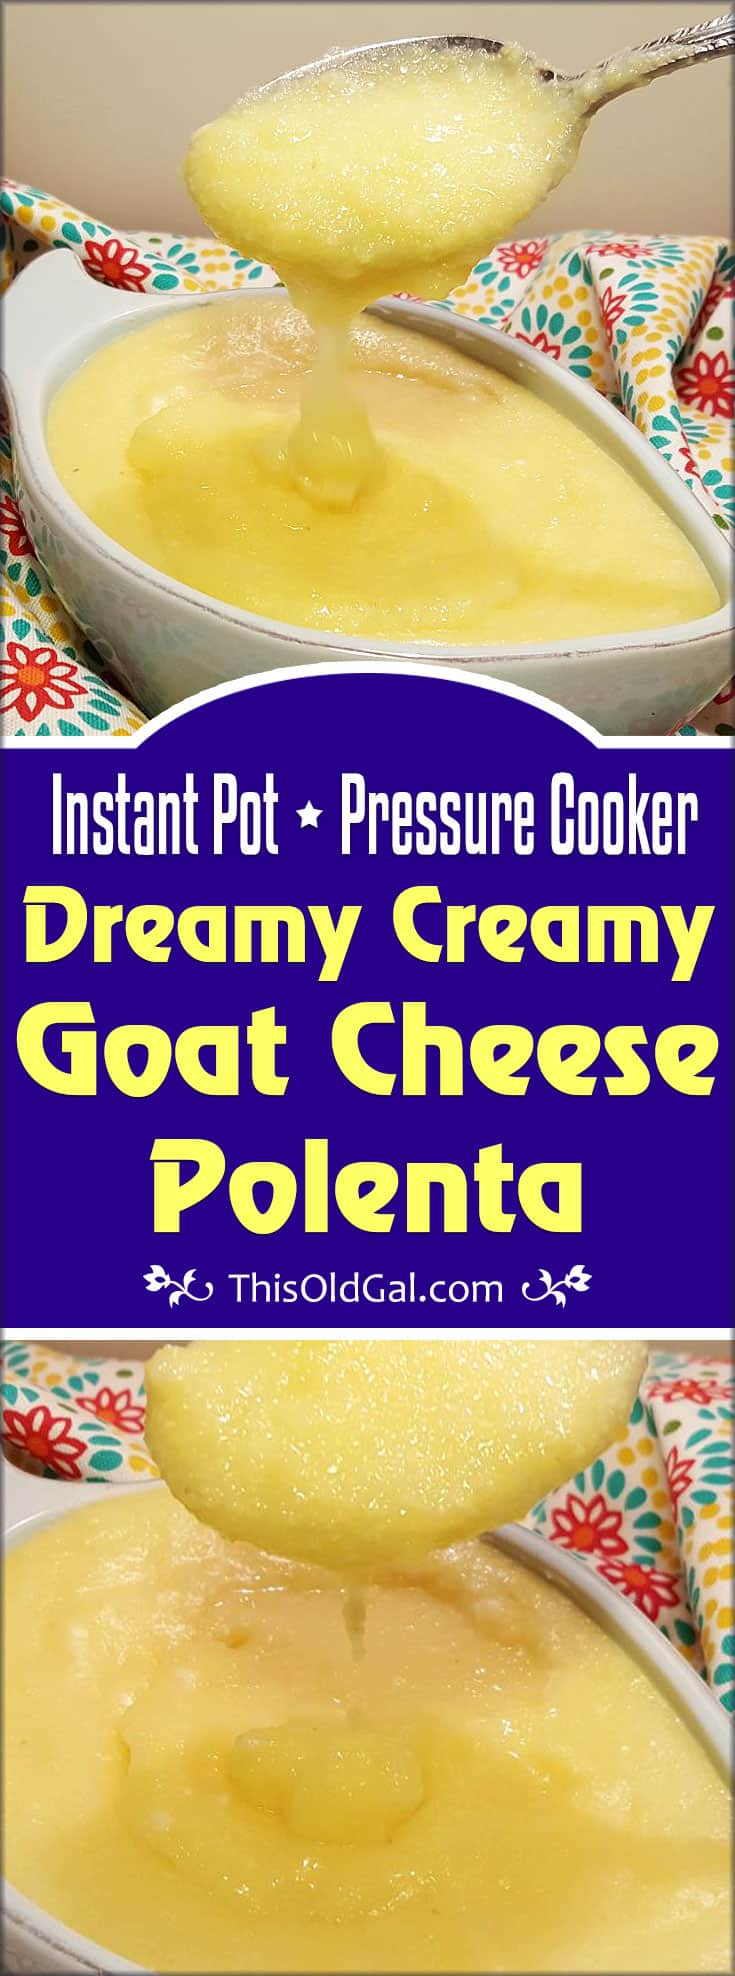 Dreamy Creamy Goat Cheese Polenta (Pressure Cooker & Stove Top Methods)